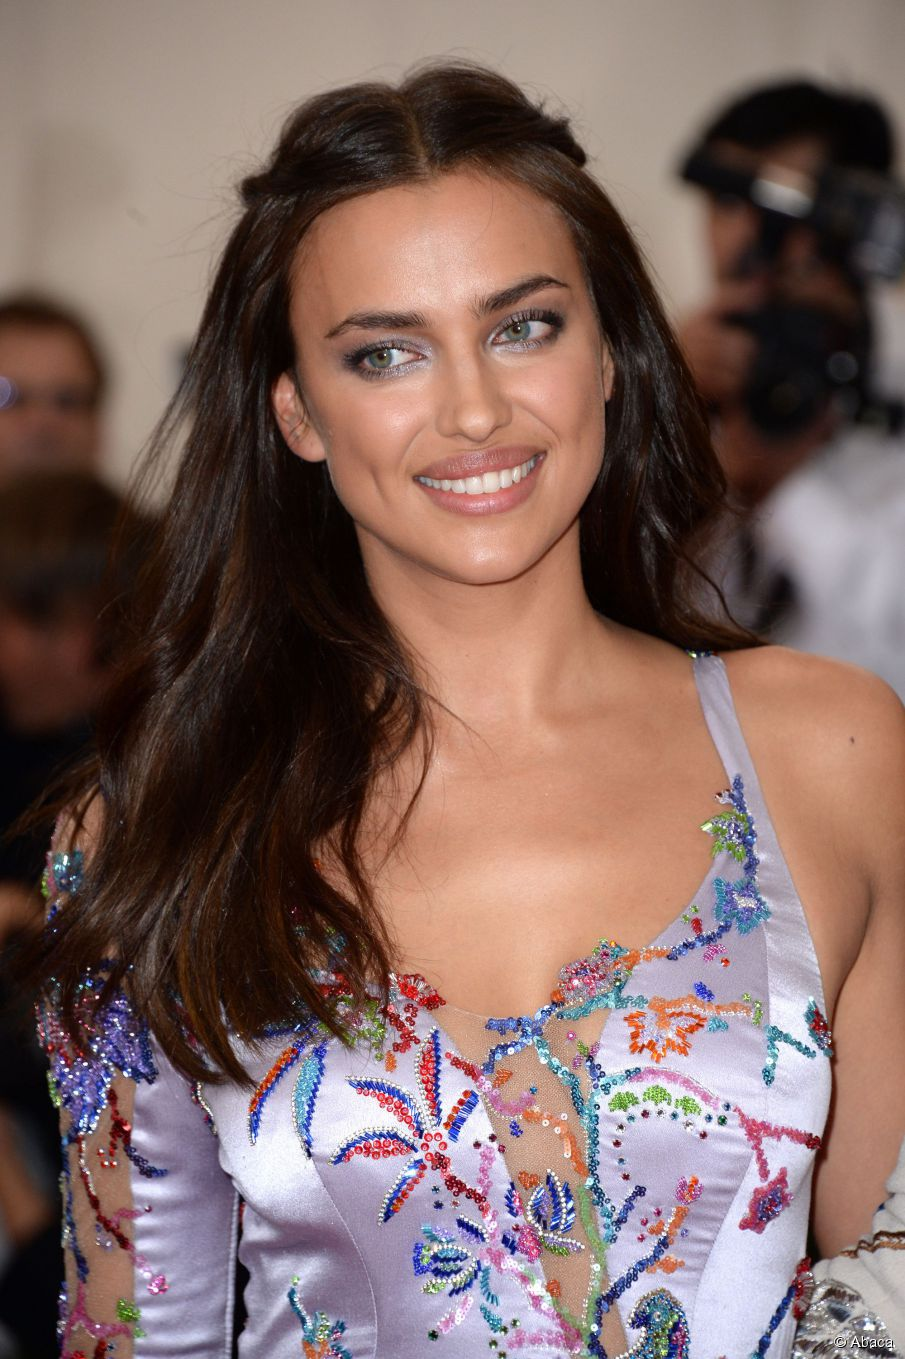 Irina Shayk hairstyle 2017 hair color 1